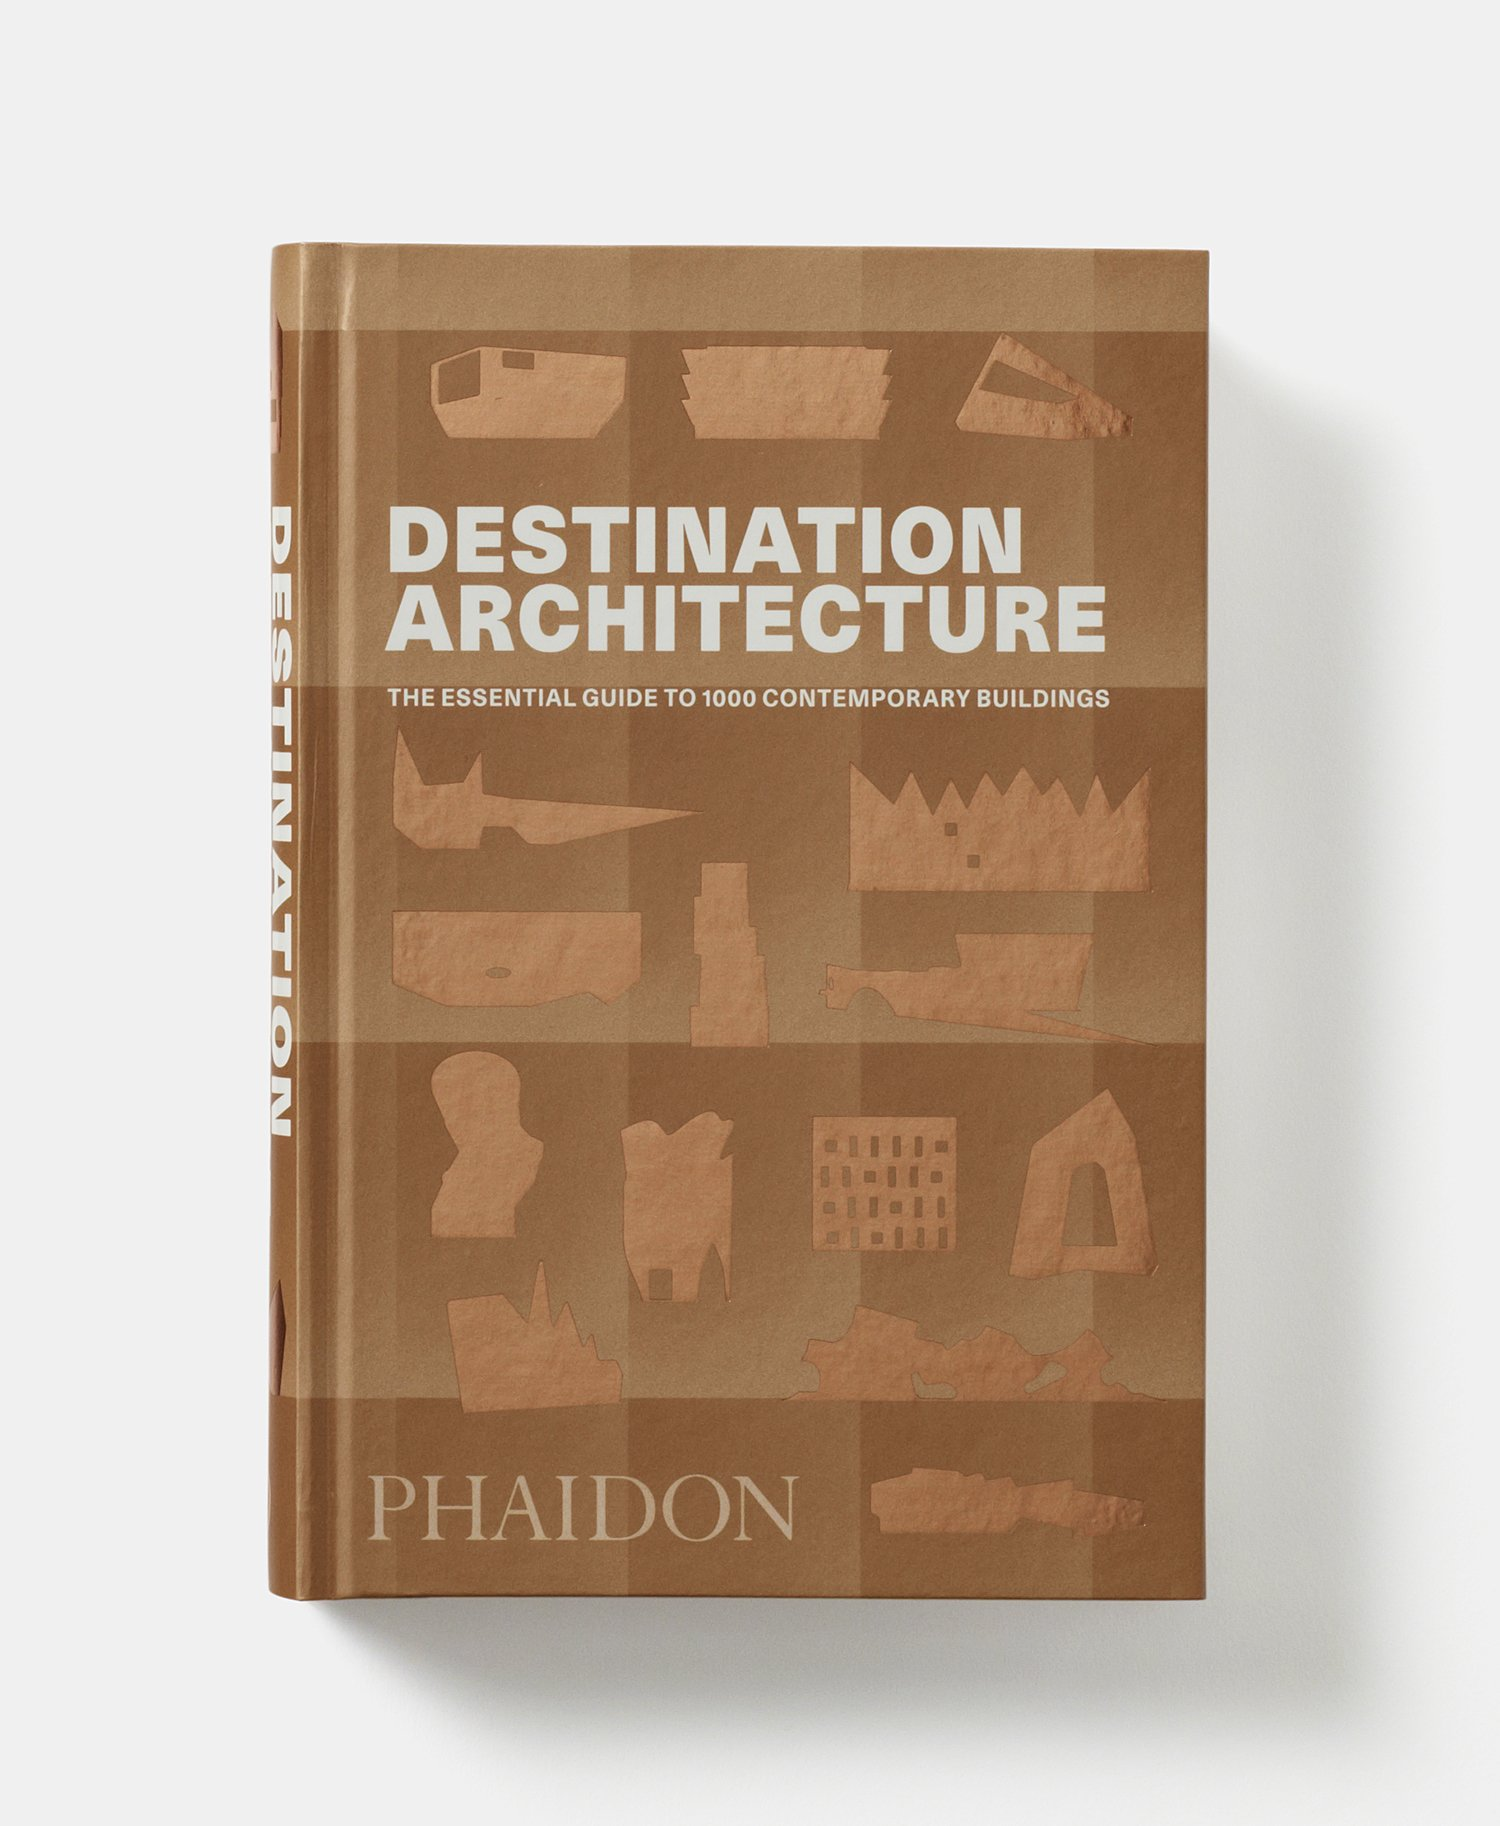 Destination Architecture: The Essential Guide to 1000 Contemporary  Buildings: Phaidon Editors: 9780714875354: Amazon.com: Books